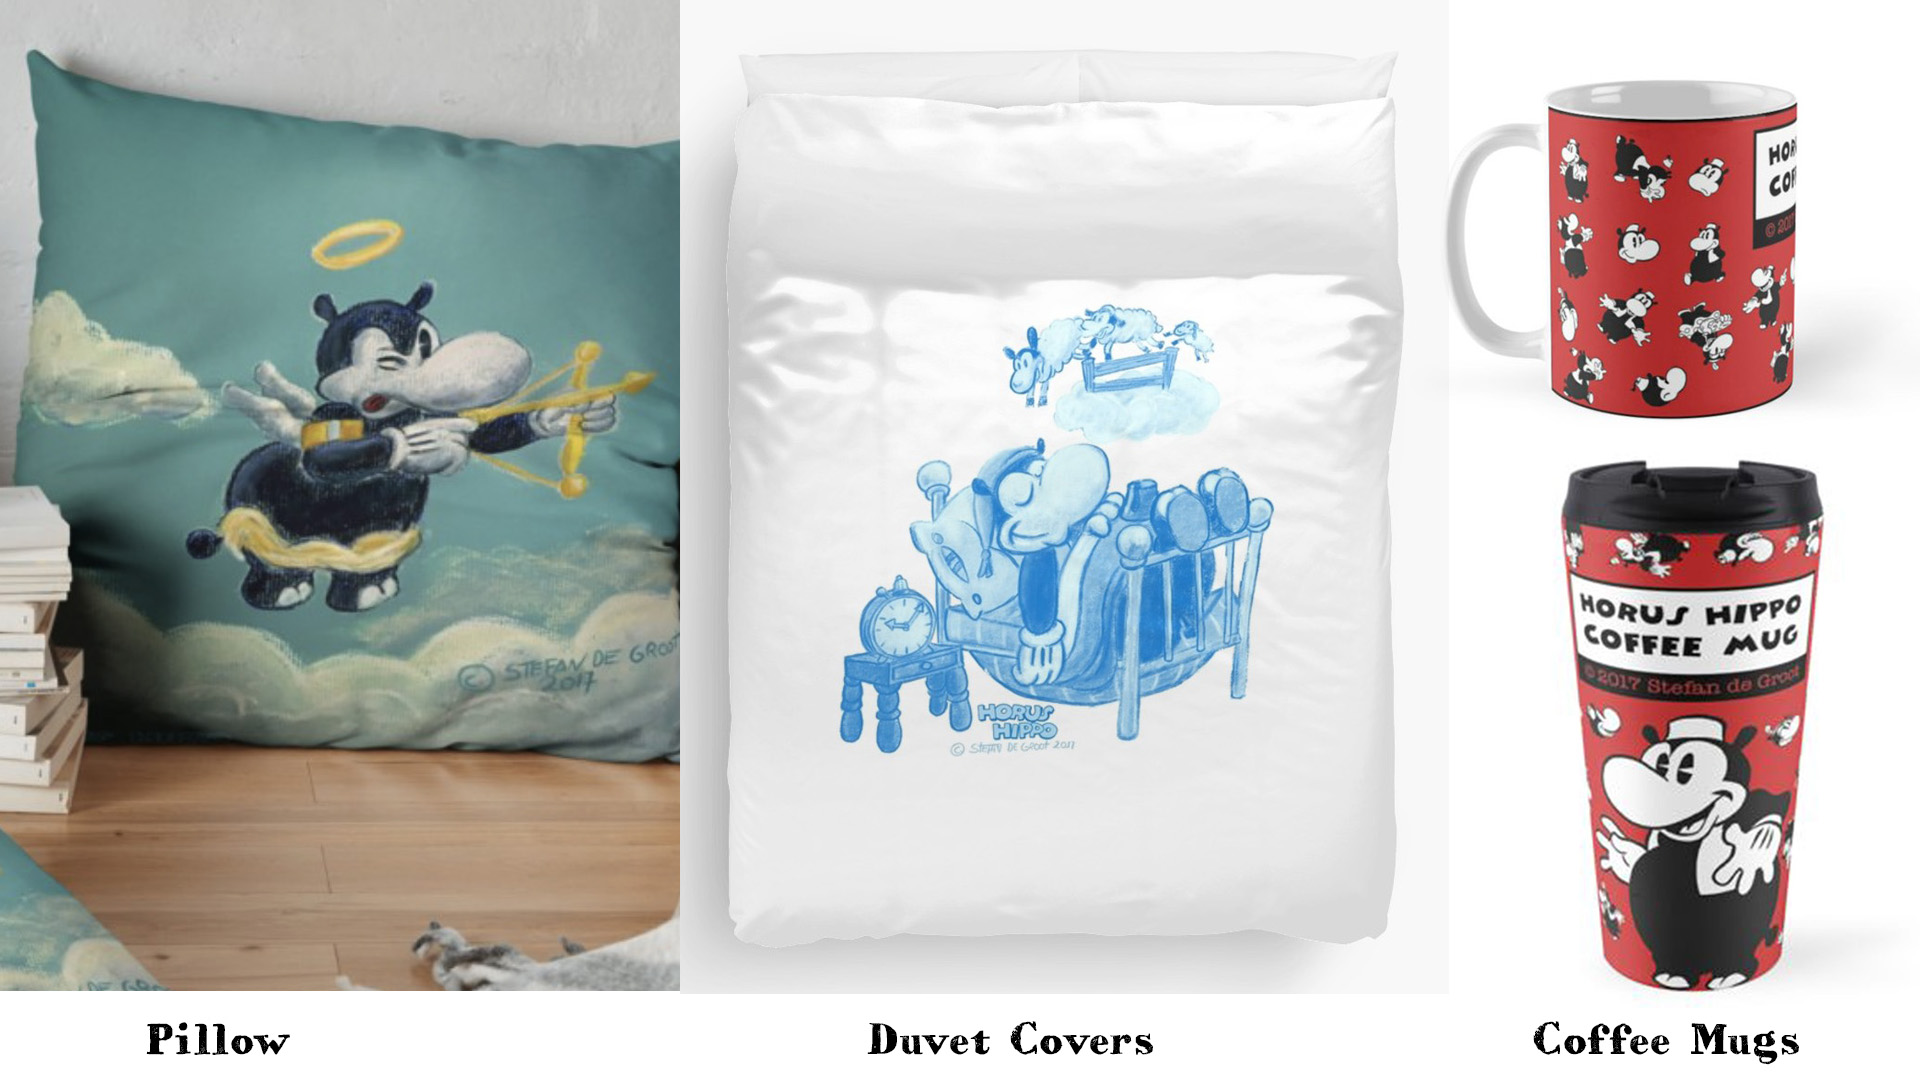 Horus Hippo Merchandise, Duvet,Pillow, Coffee Mug